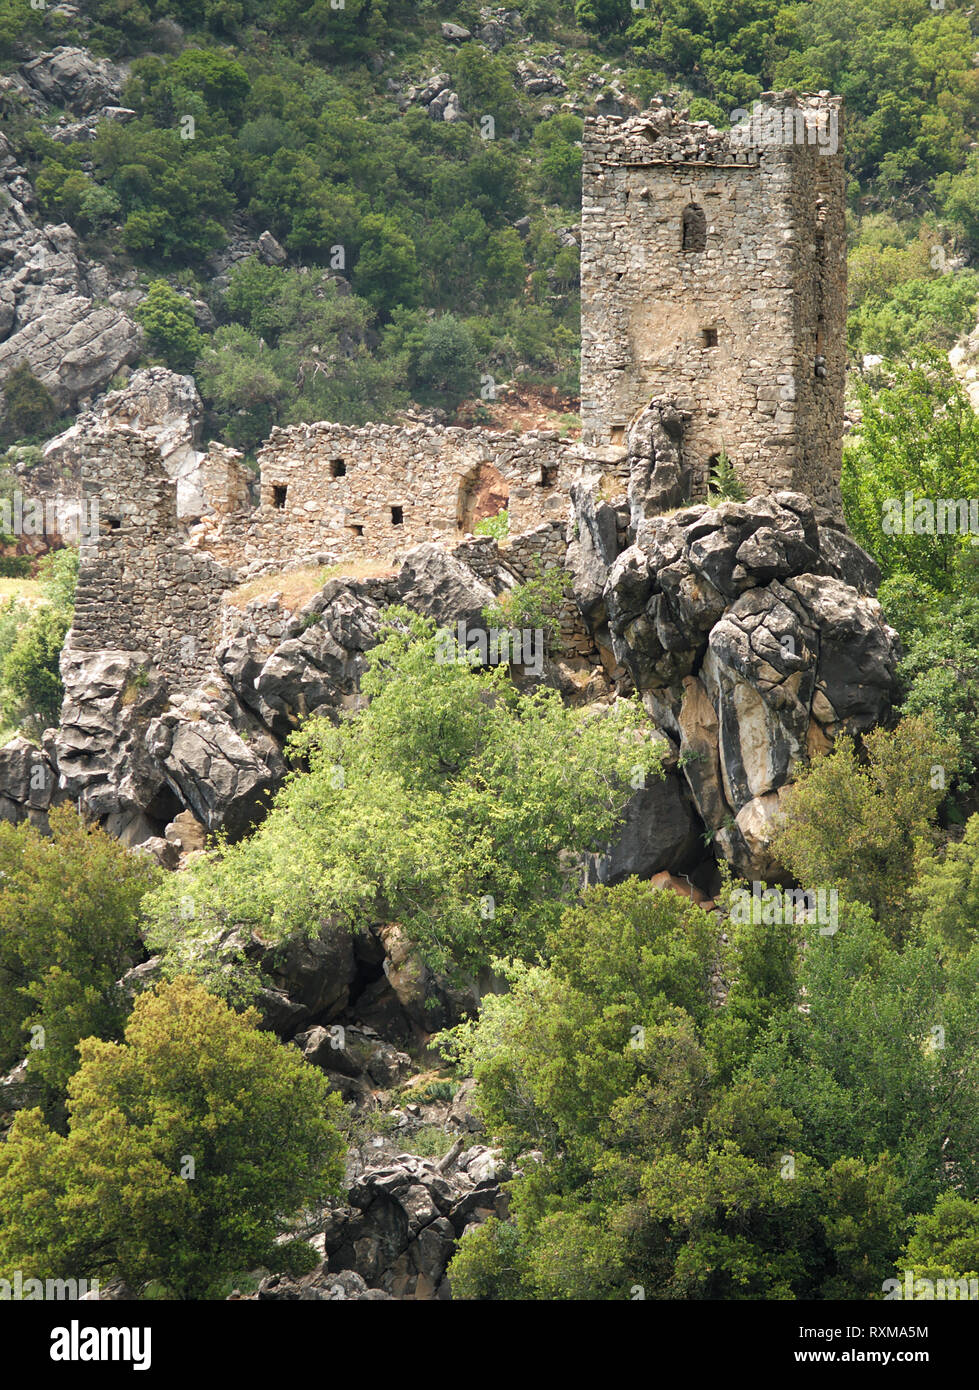 Stone tower ruins on a steep rocky cliff with trees in Mani, Greece. - Stock Image